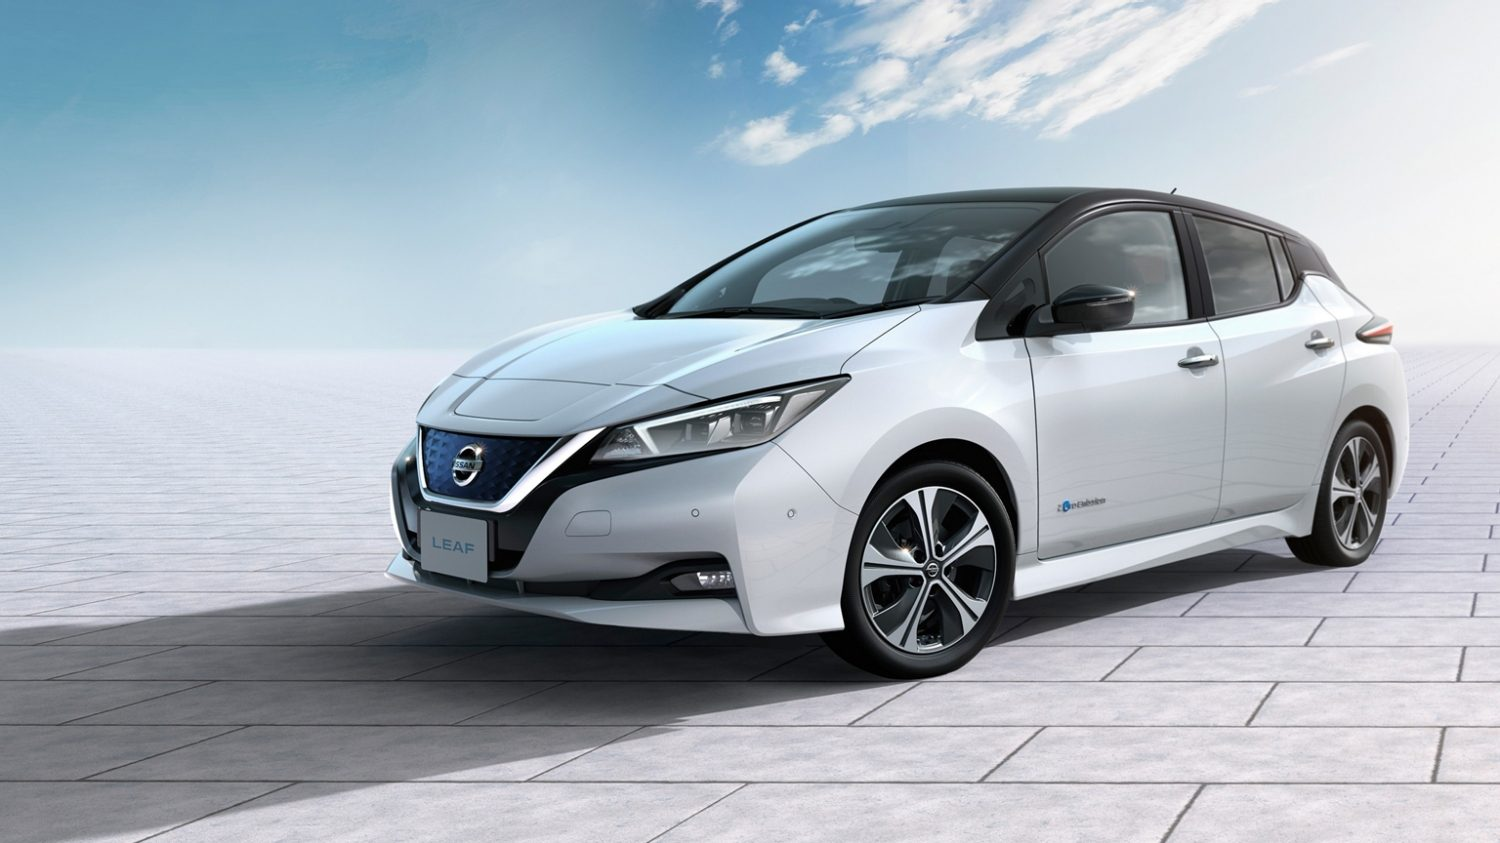 New Nissan LEAF wins first international award